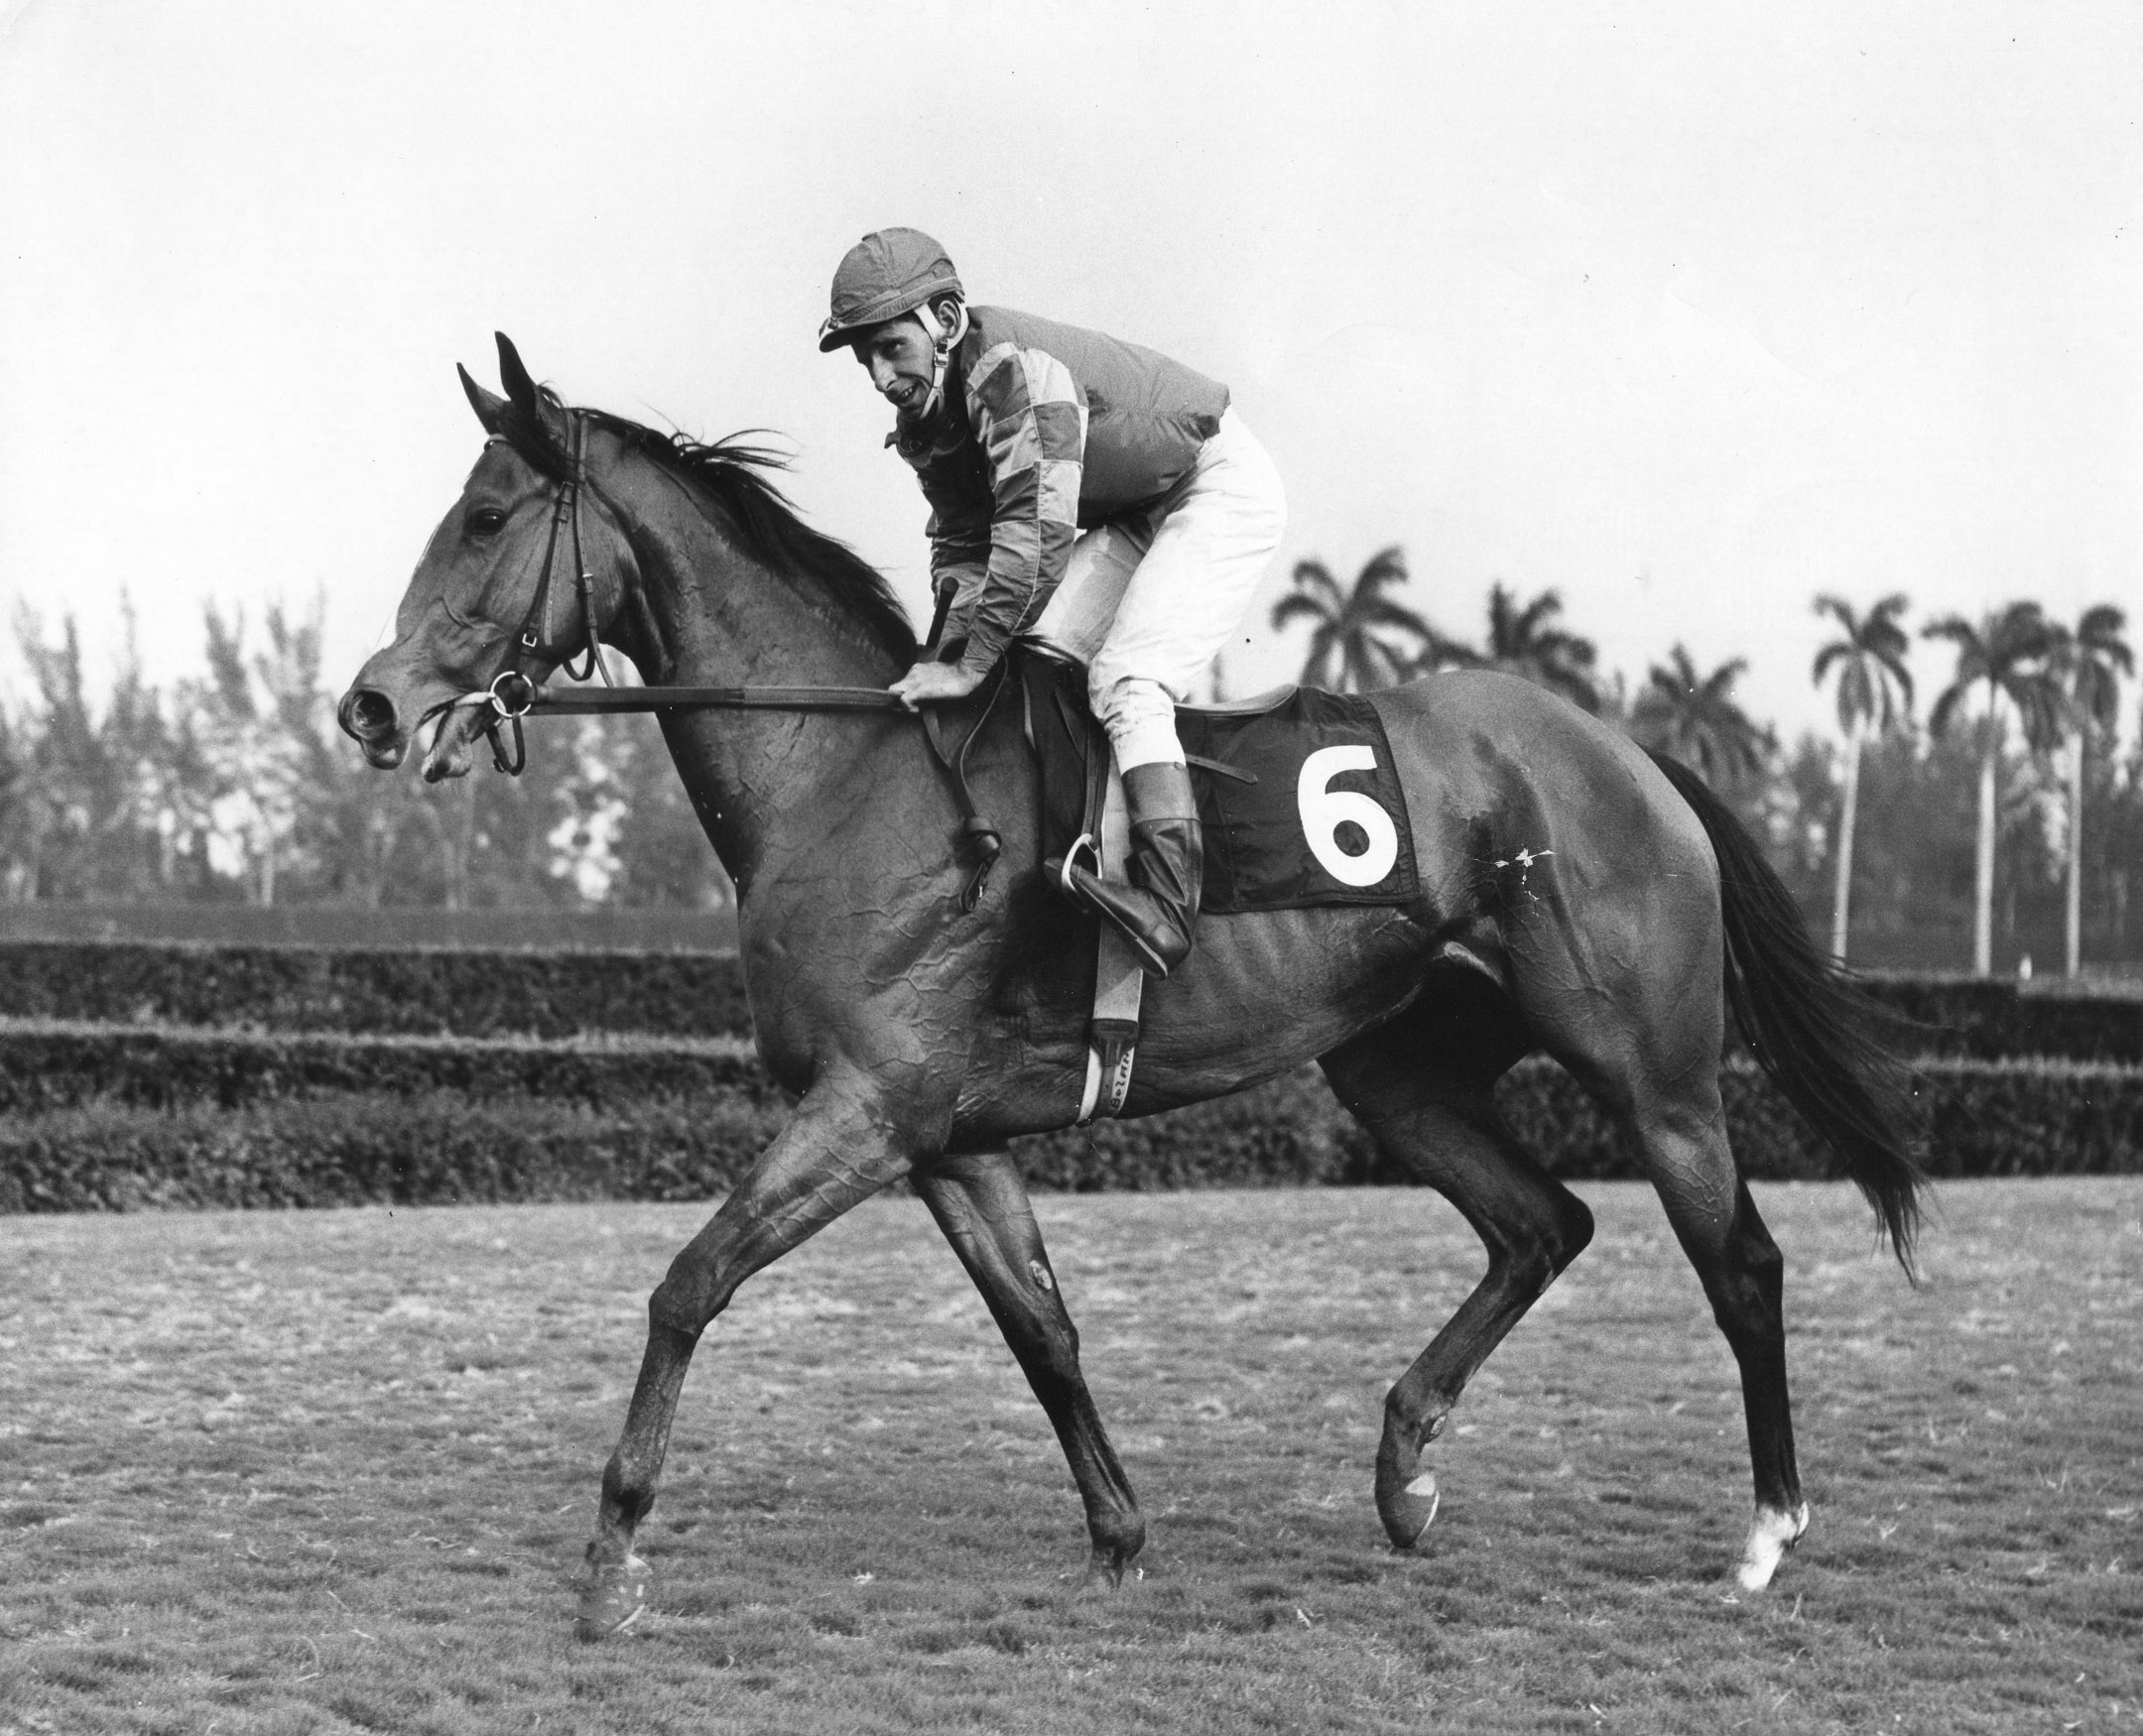 Bill Boland on Mac's Sparkler in the 1967 Black Helen at Hialeah Park (Jim Raftery Turfotos/Museum Collection)